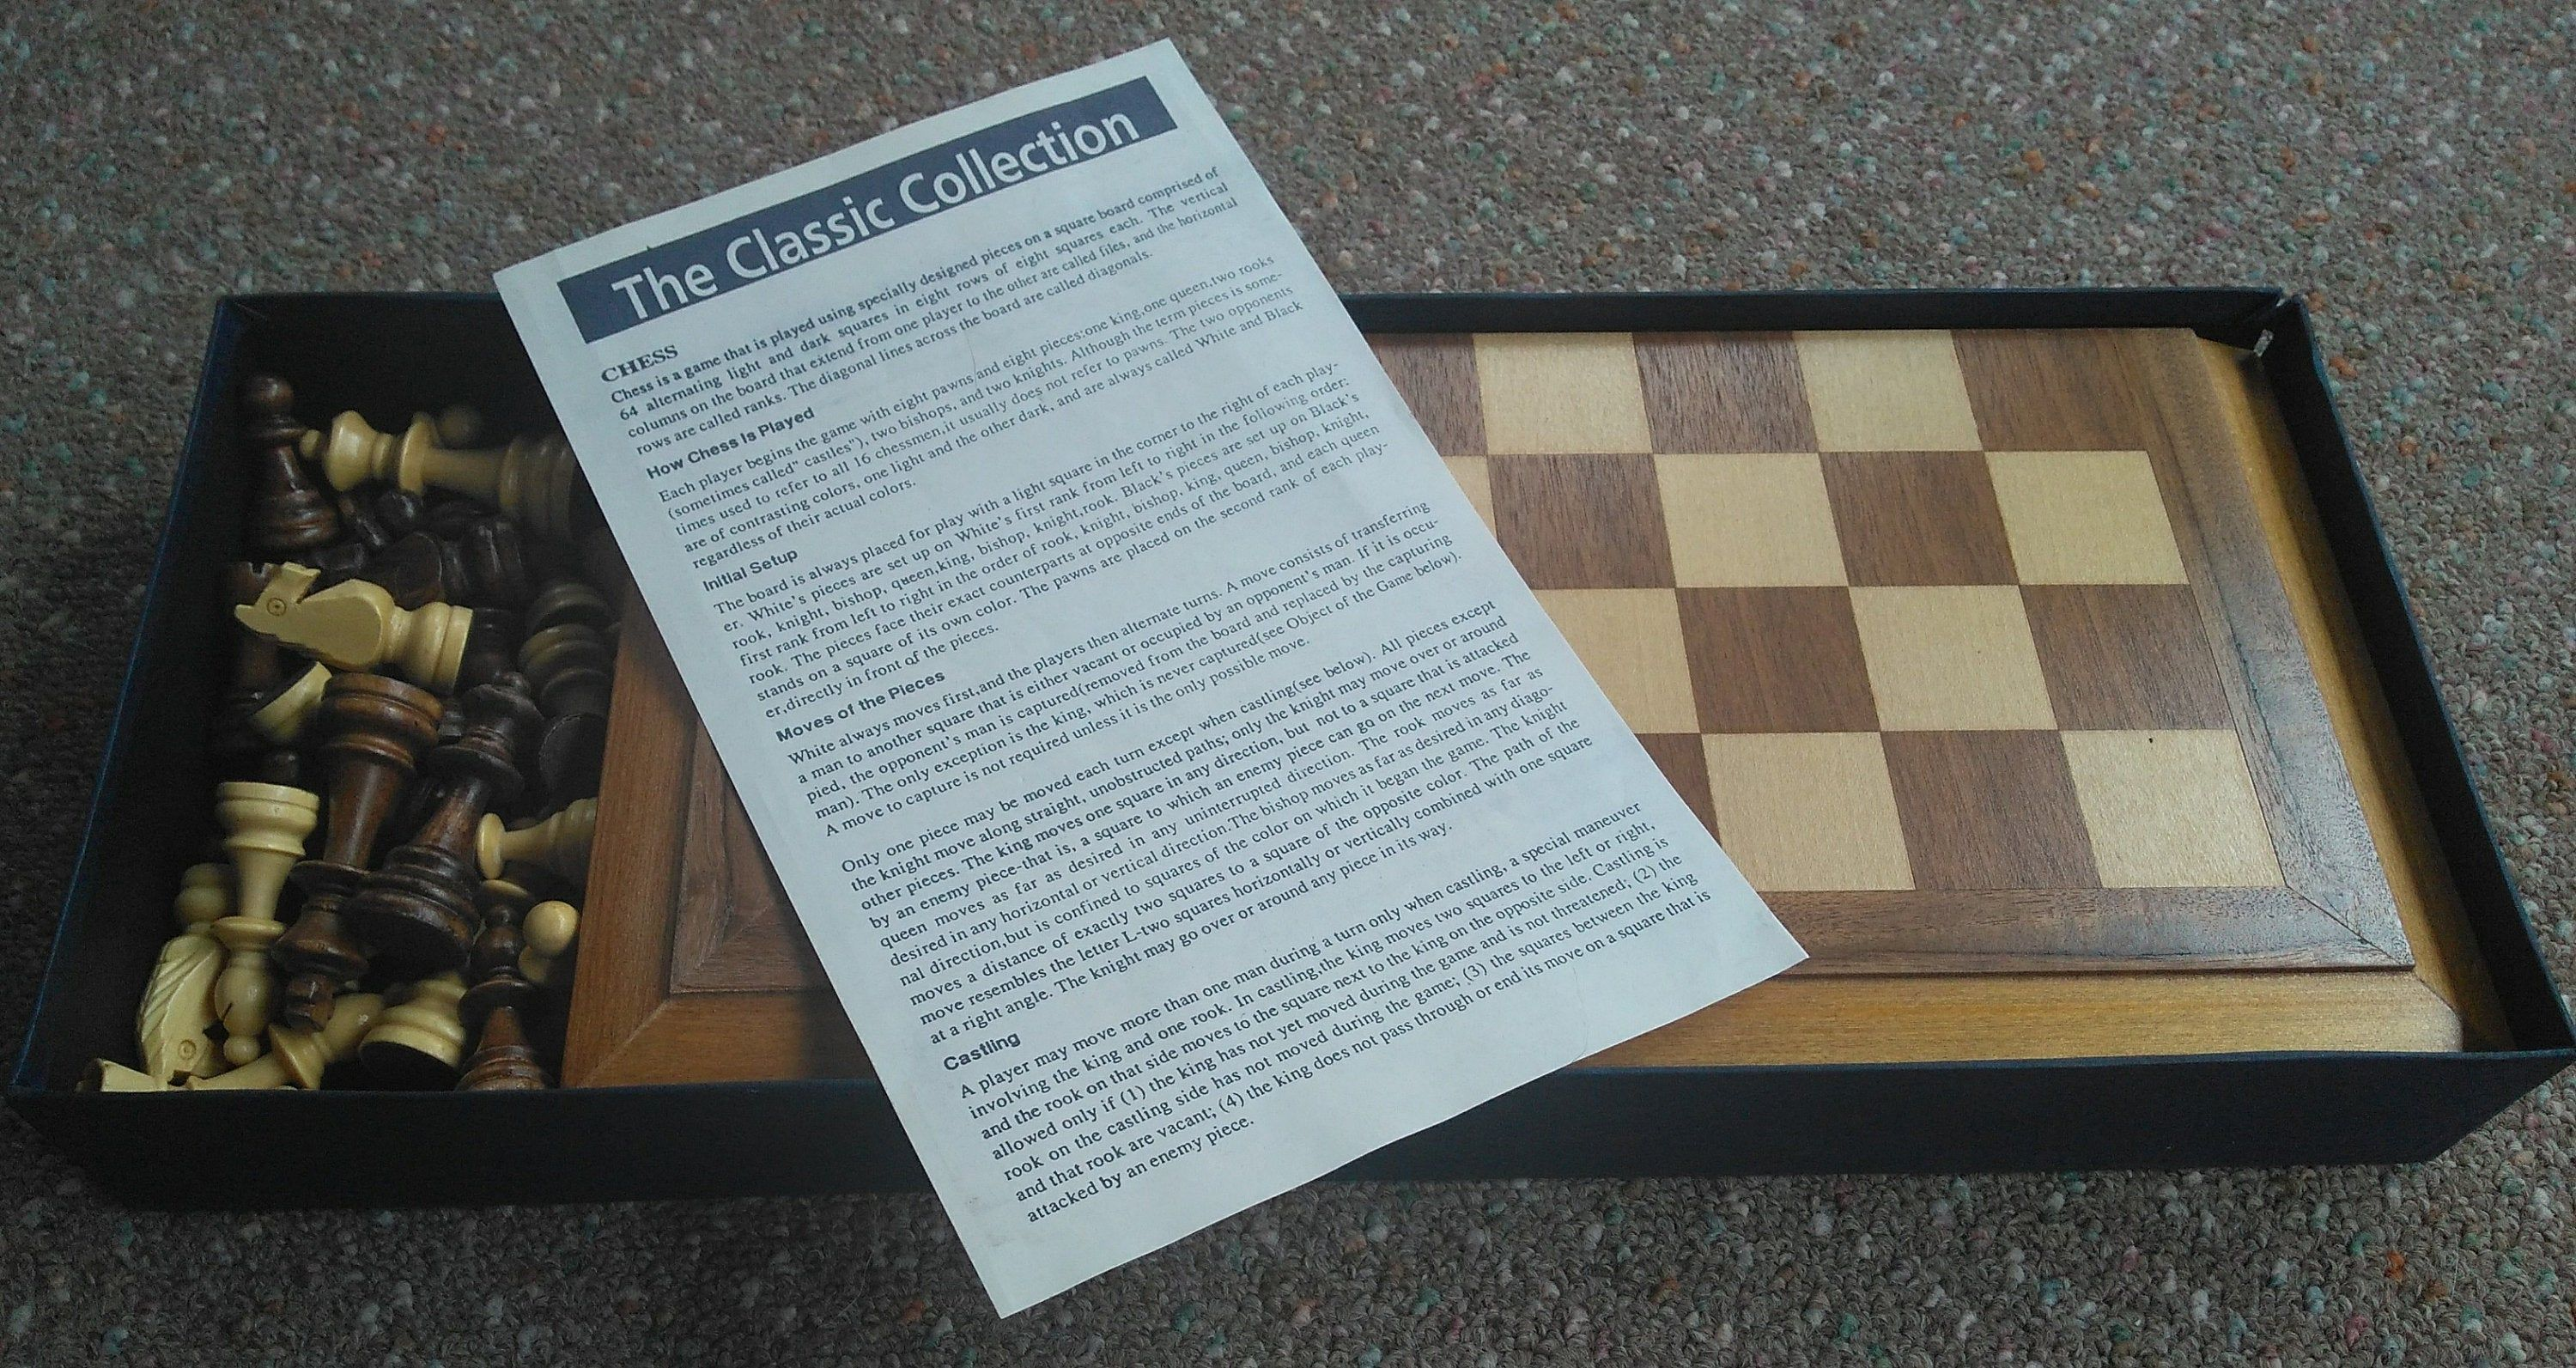 Vintage Wooden Chess Game Etsy in 2020 Wooden chess